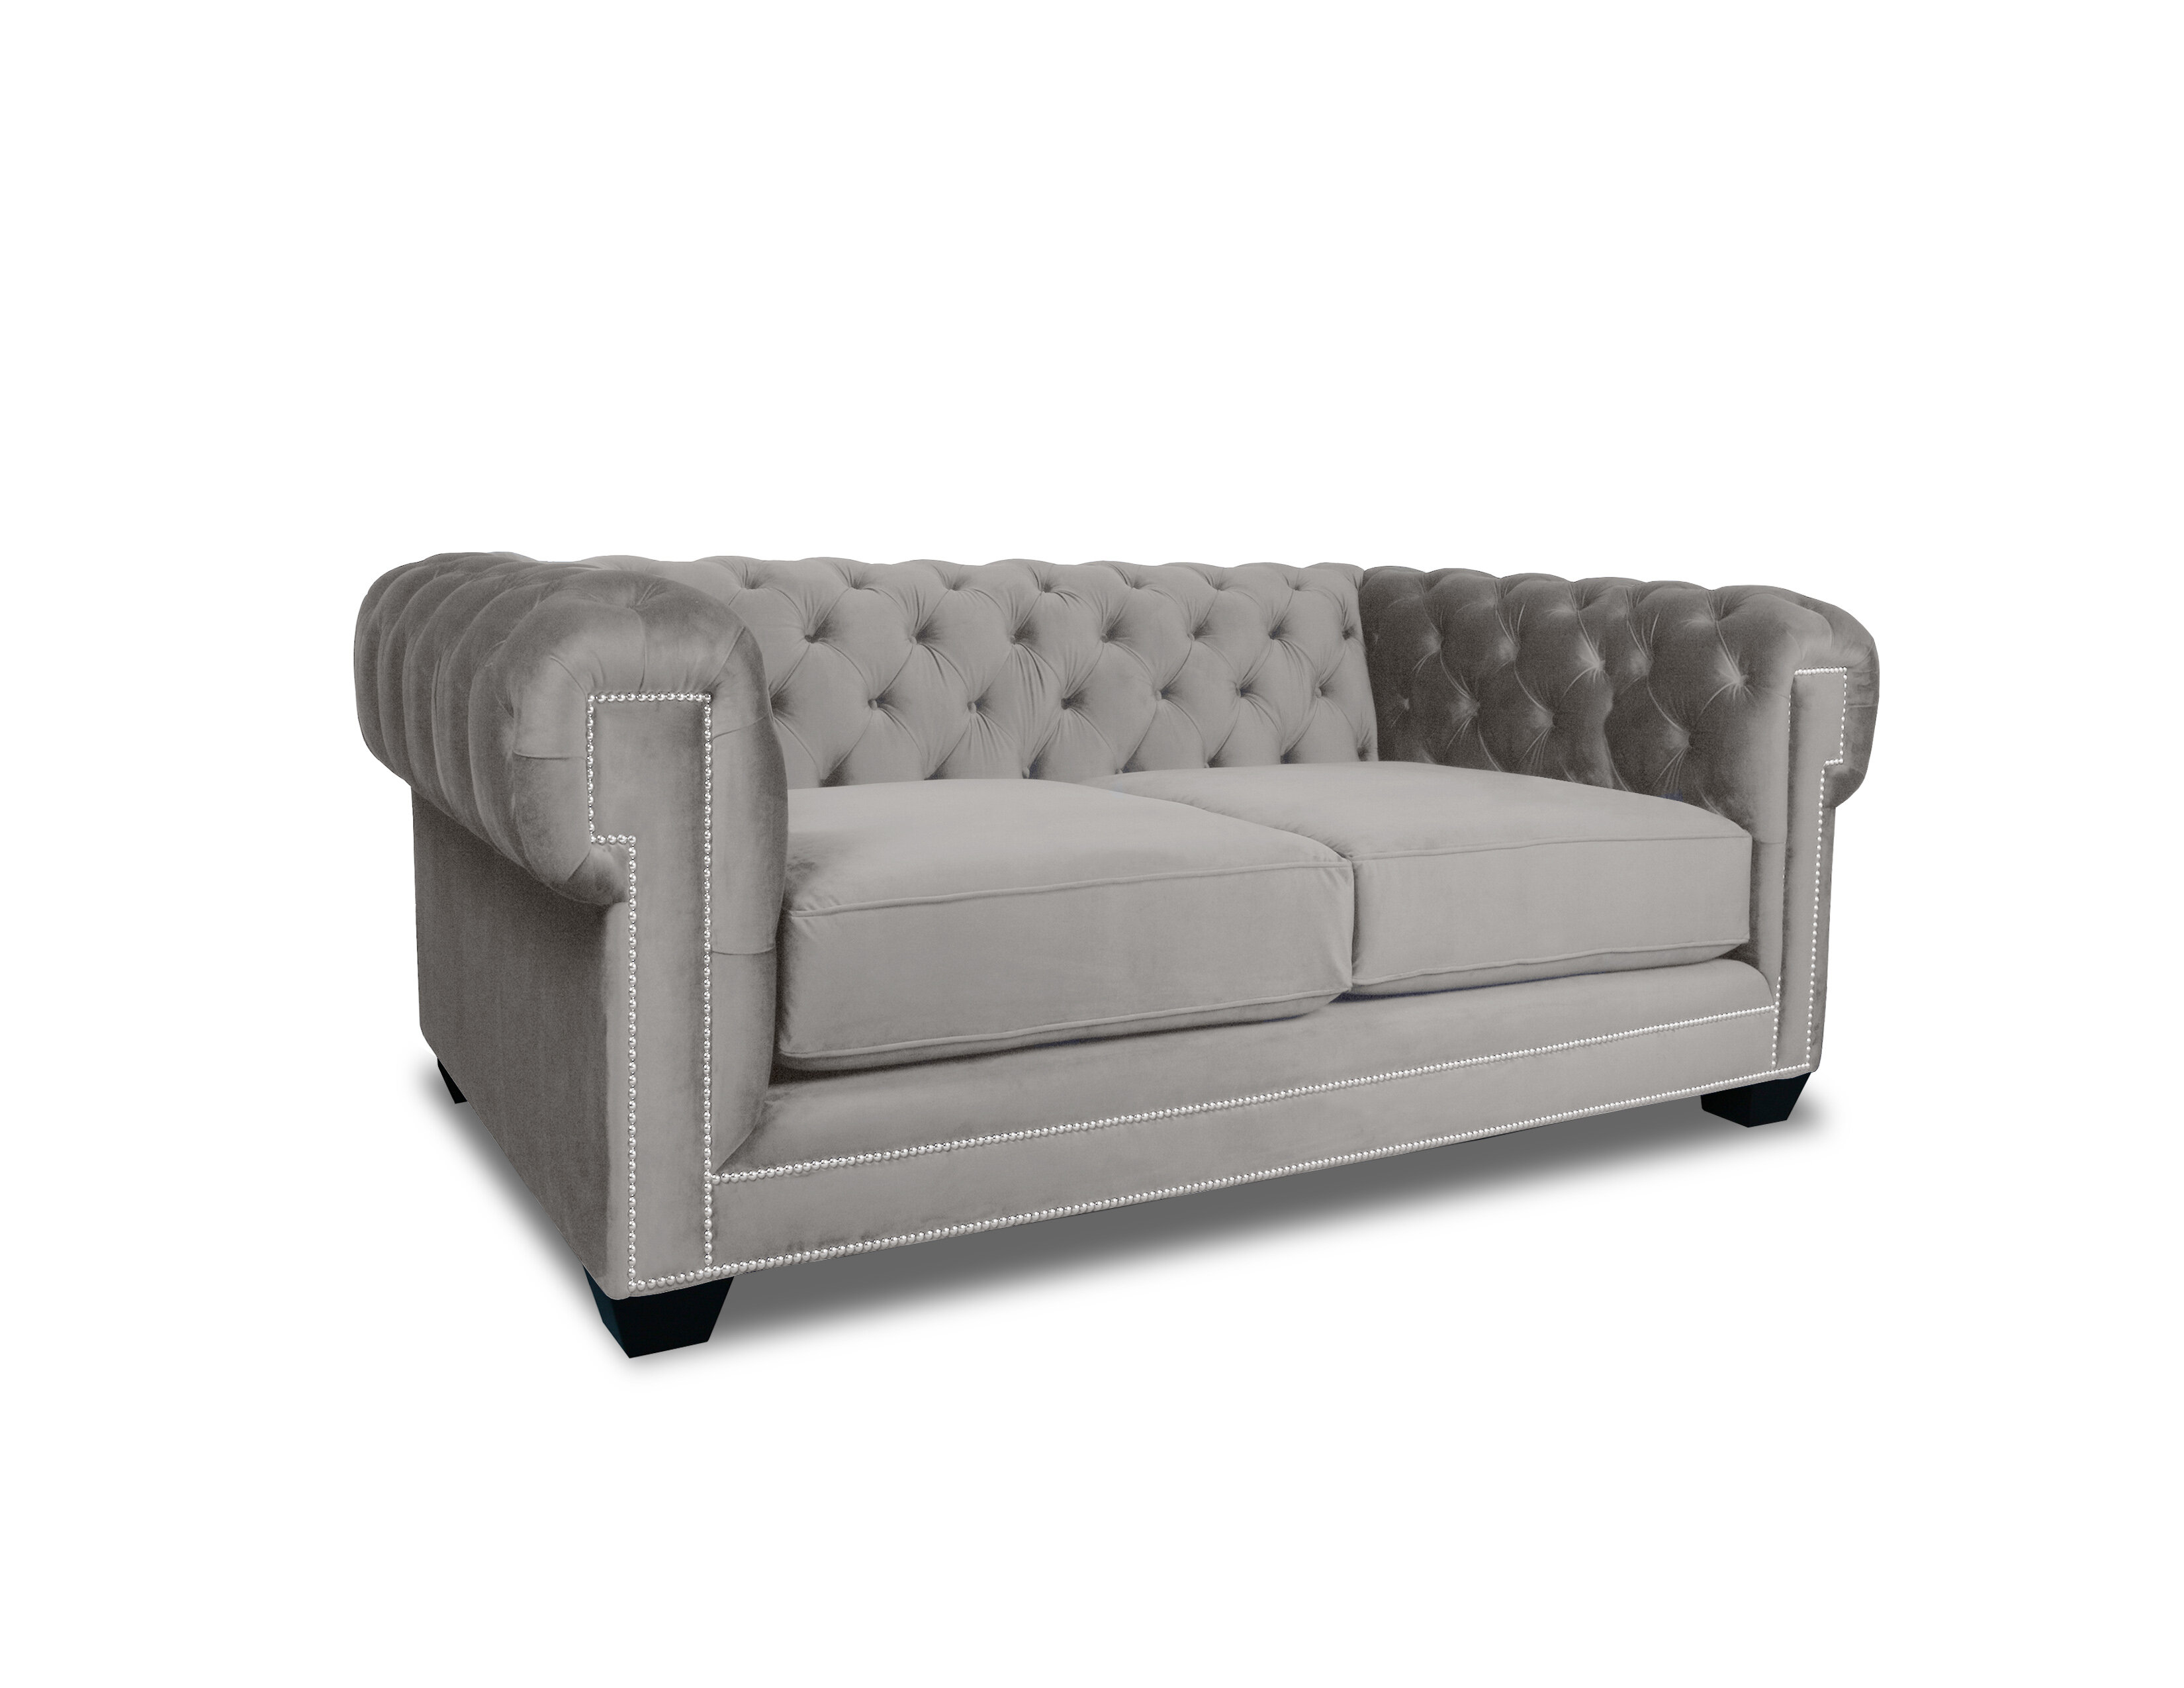 Charmant Everly Quinn Gauna Plush Deep Chesterfield Sofa | Wayfair